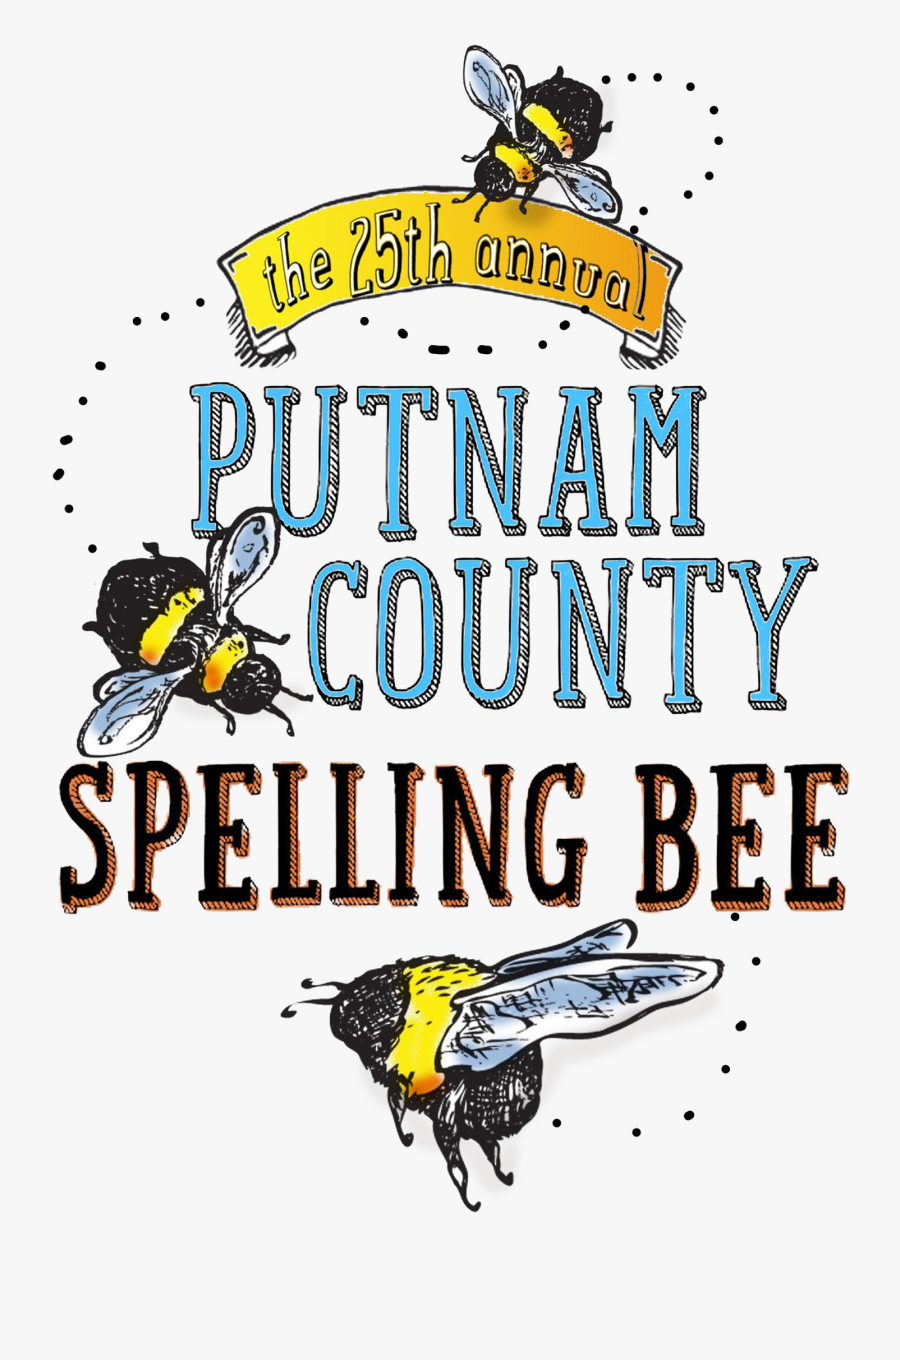 Transparent Spelling Bee Png 25th Annual Putnam County Spelling Bee Free Transparent Clipart Clipartkey